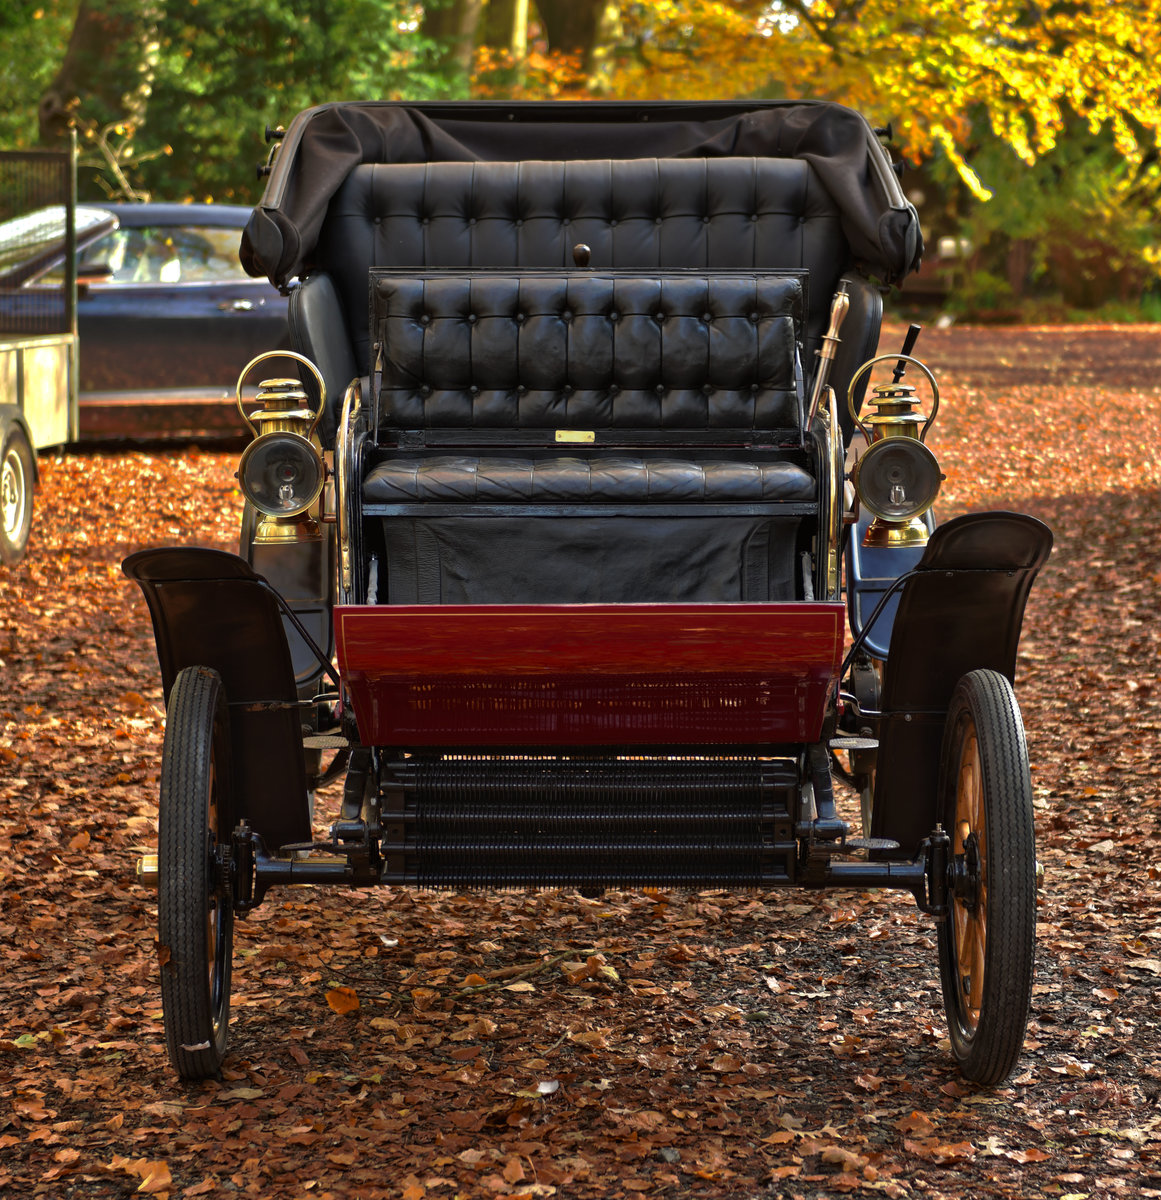 1903 STEVENS-DURYEA 7hp MODEL L RUNABOUT For Sale (picture 3 of 12)